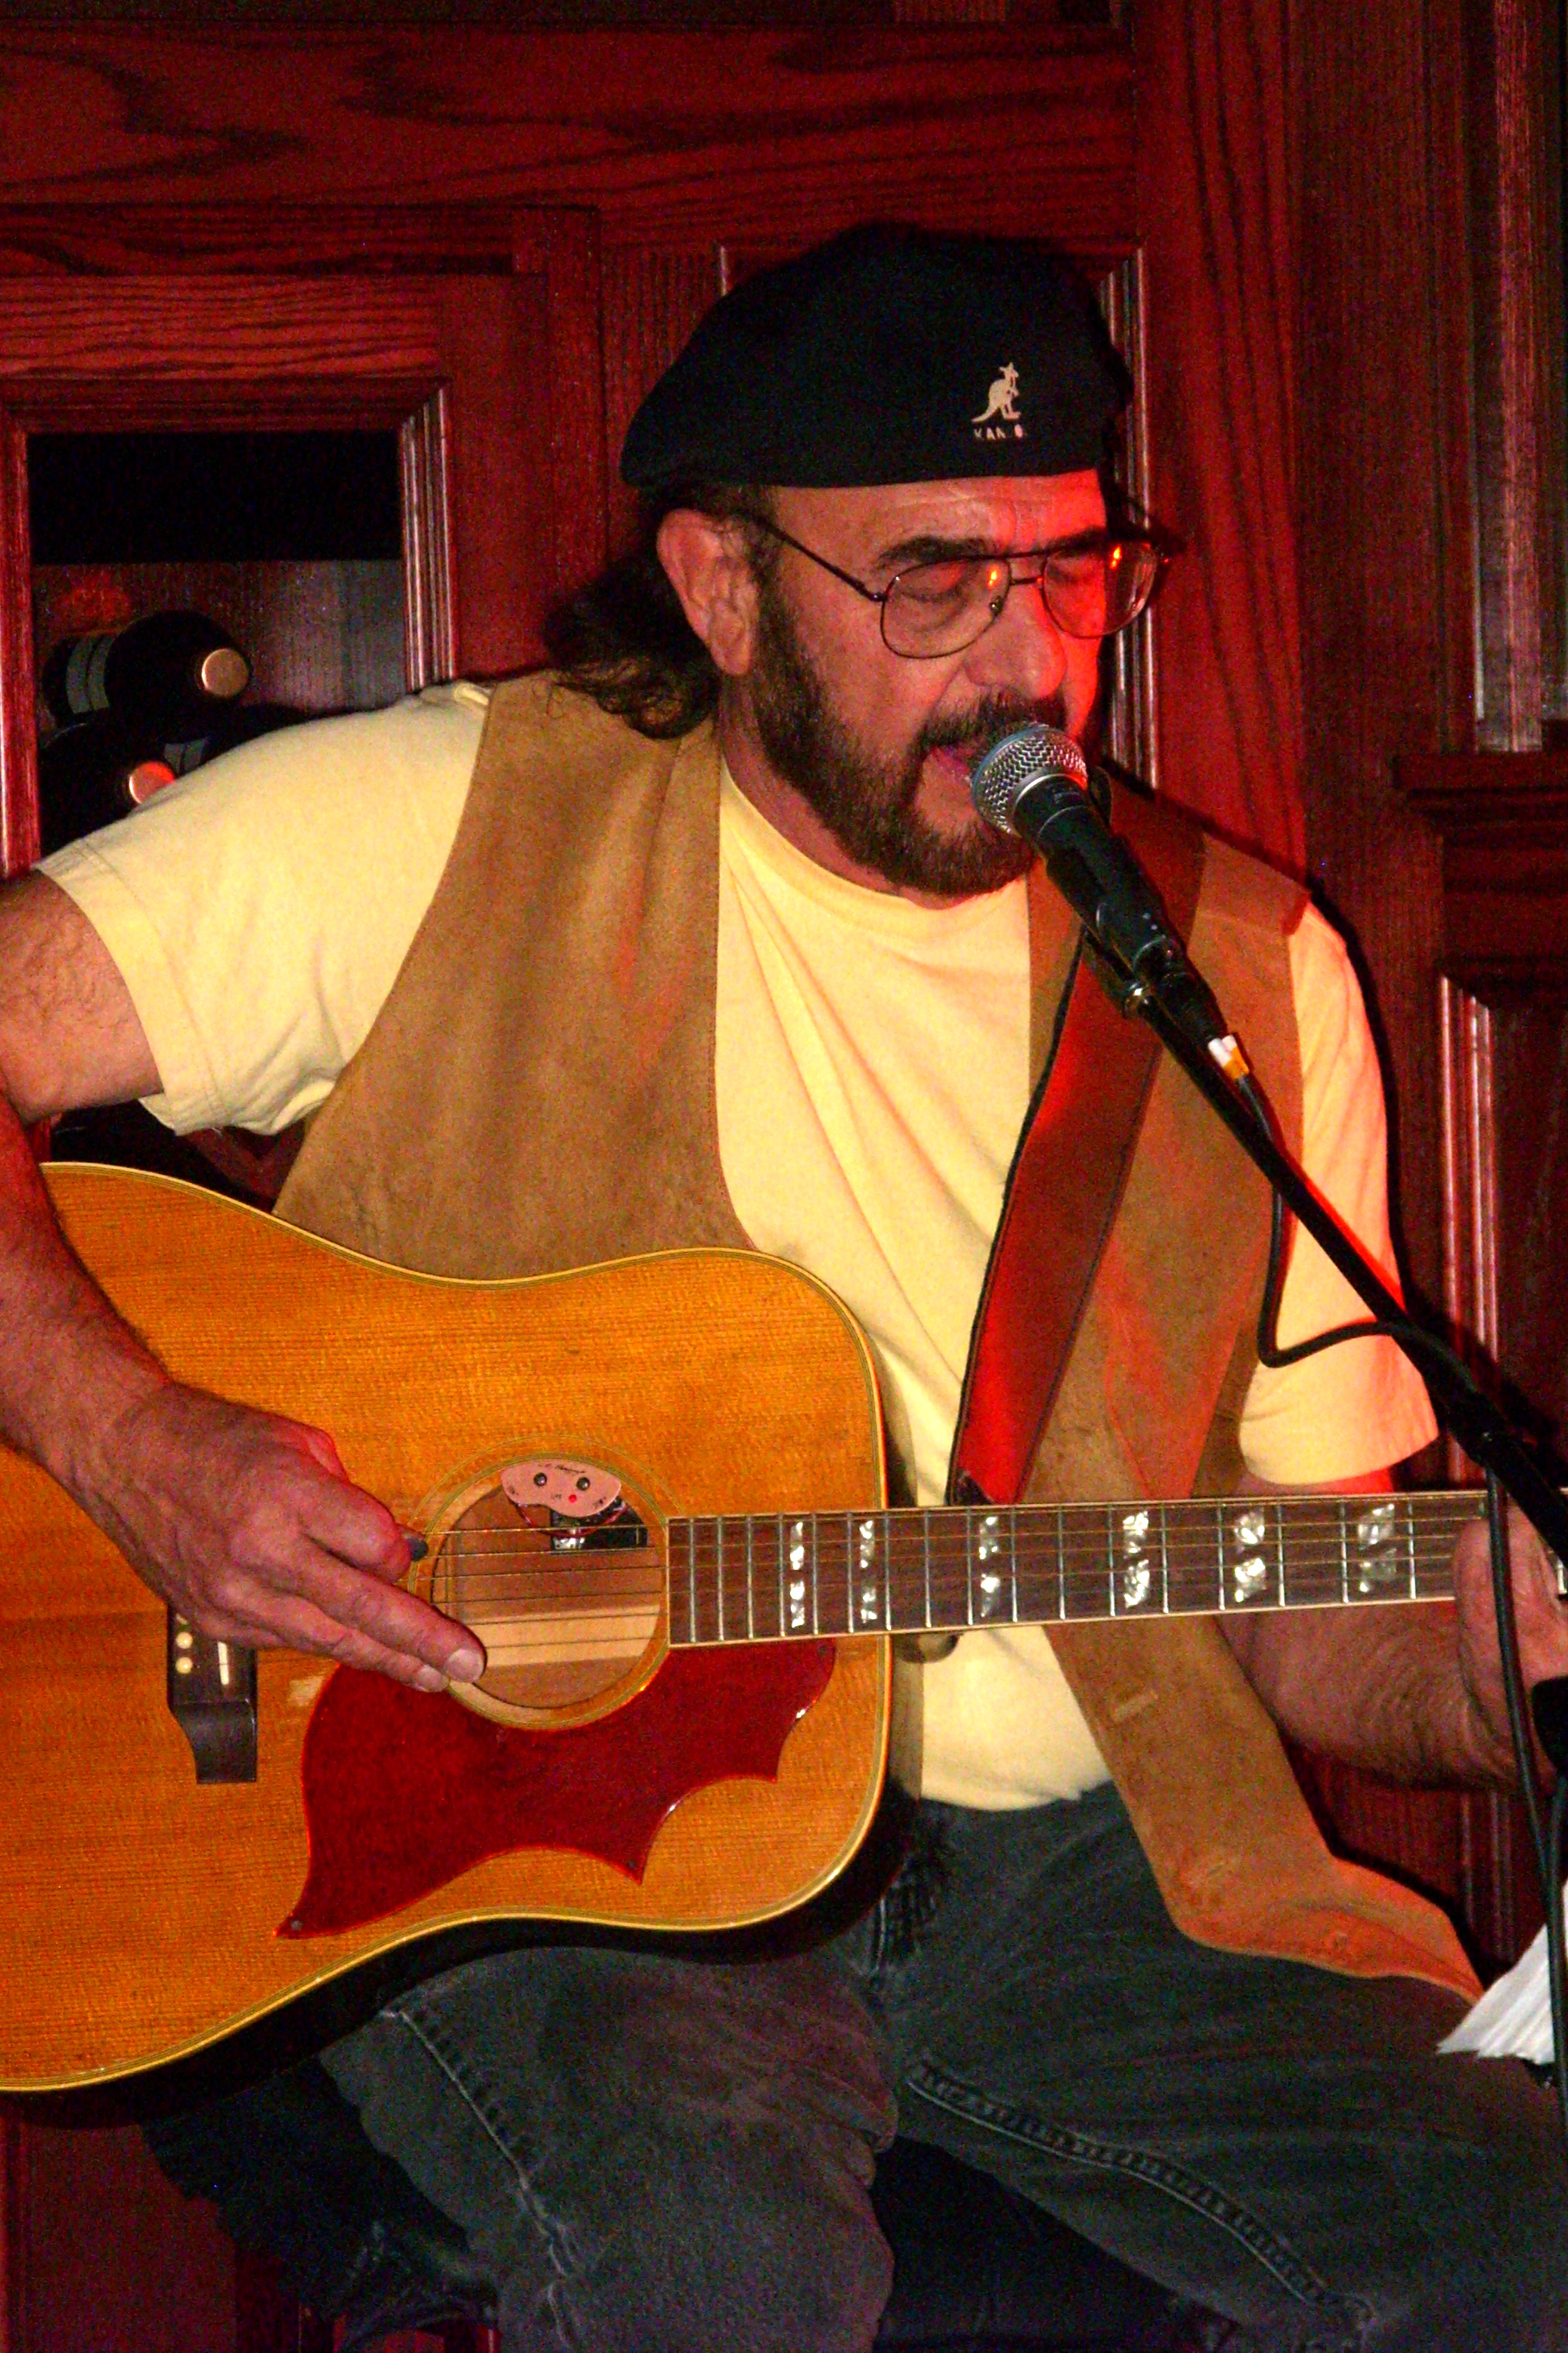 Northeast Nebraska Songwriter & Performer Jim Casey from Norfolk, NE